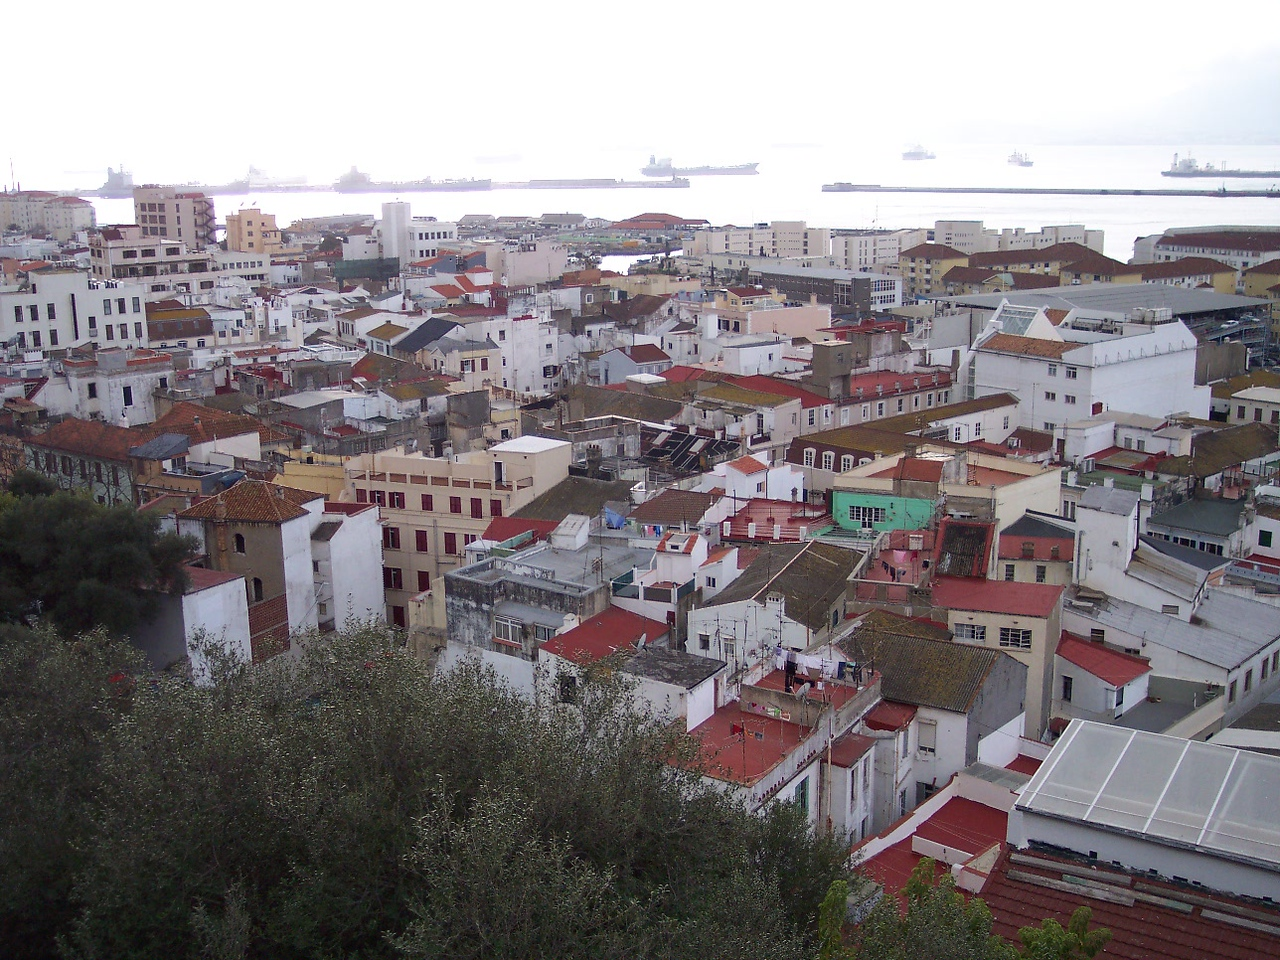 Gibraltar. View of the city